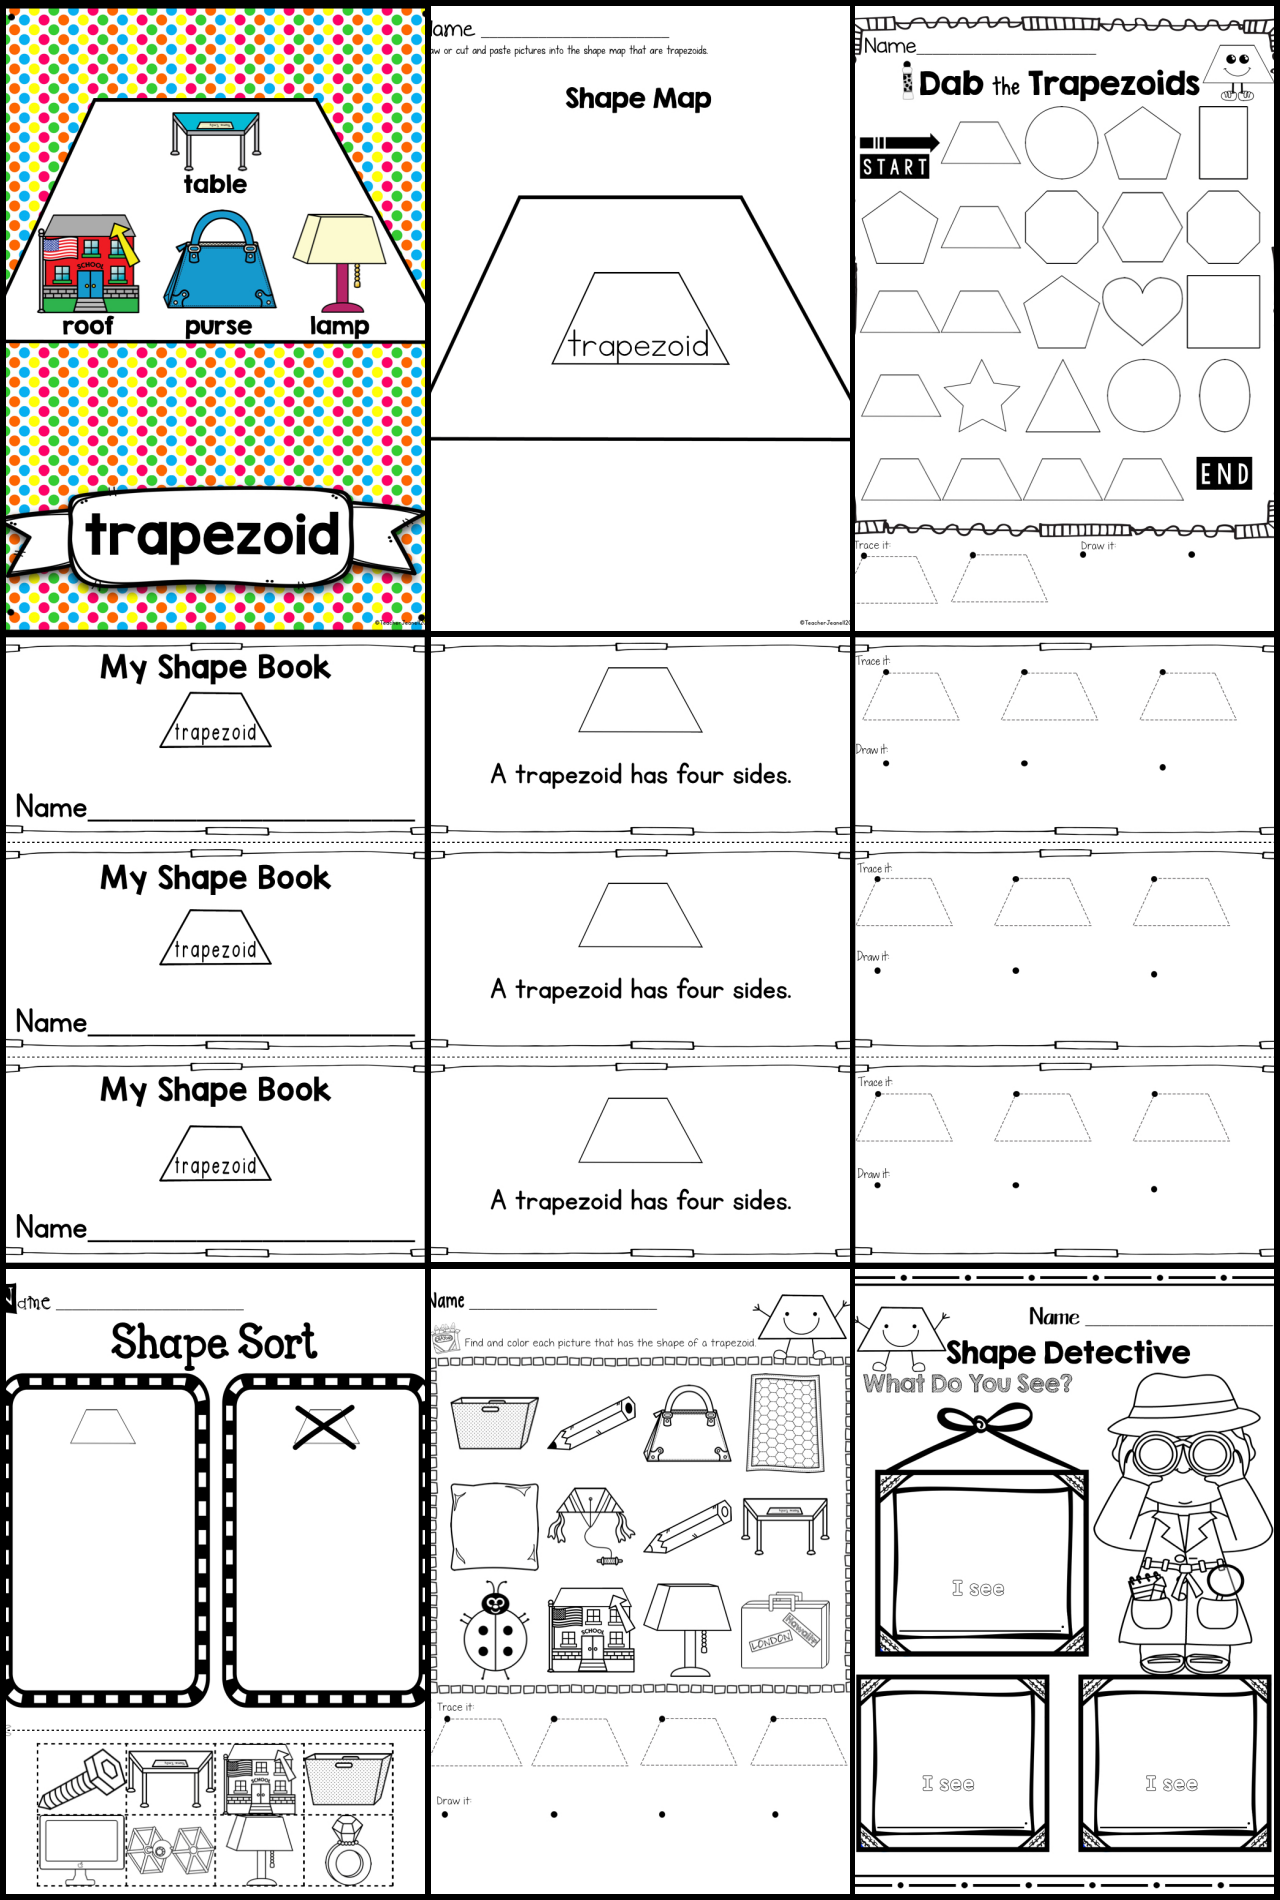 Shape Of The Week Trapezoid Trapezoid Shape Trapezoid Activities For Shapes Trapezoid S Elementary School Math Activities 2d Shapes Shapes Activities [ 1900 x 1280 Pixel ]